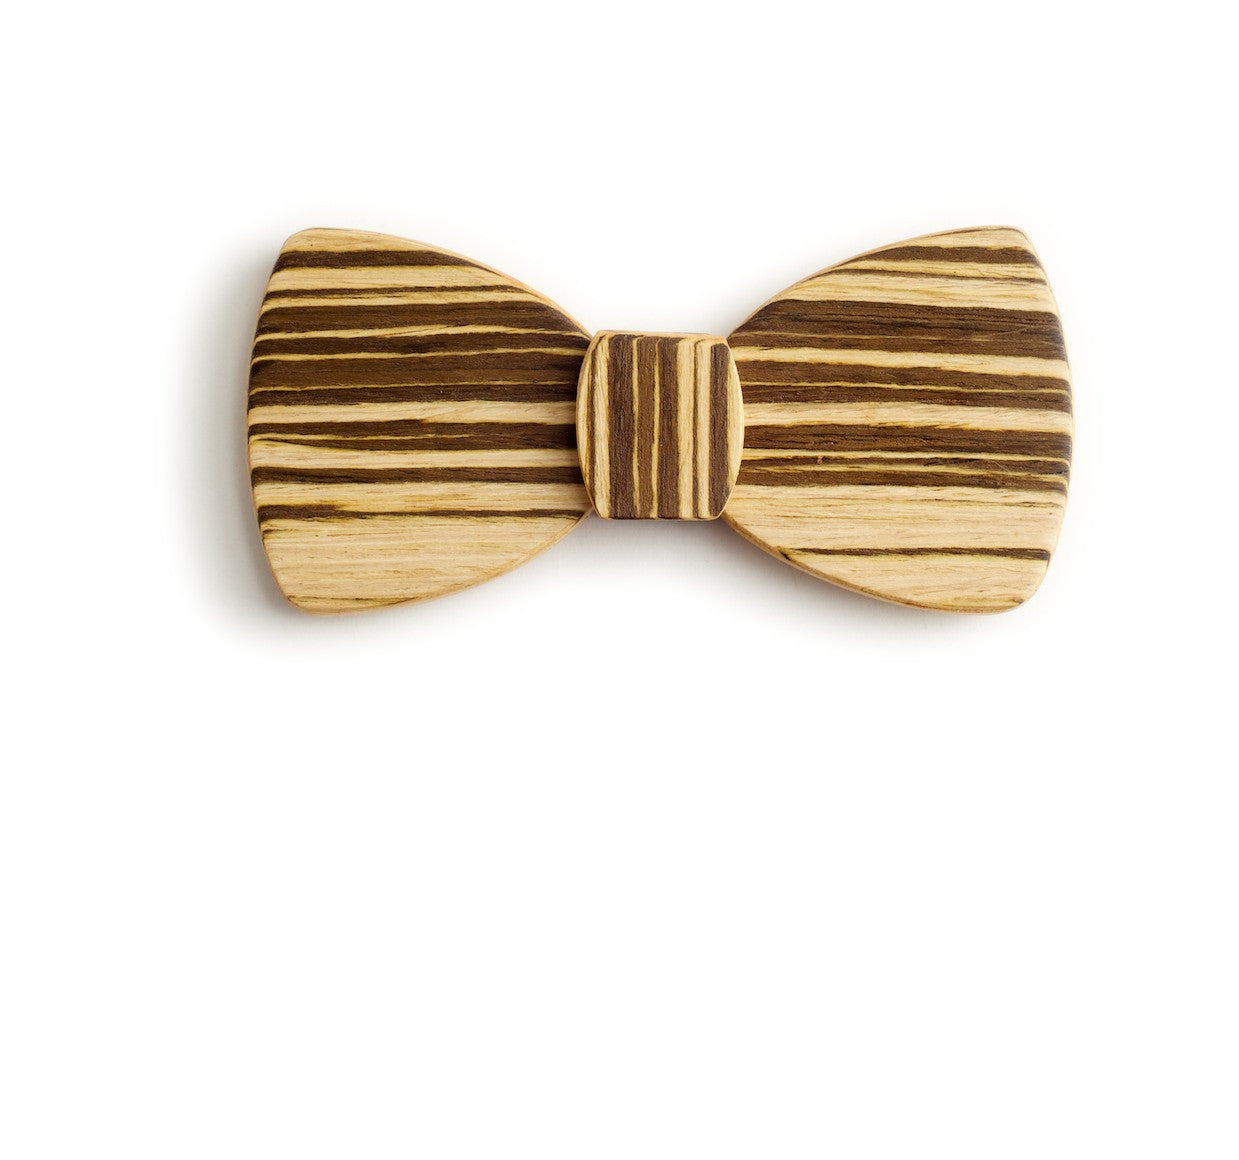 Hipster wood bow tie - An ideal quirky men's gift for the man